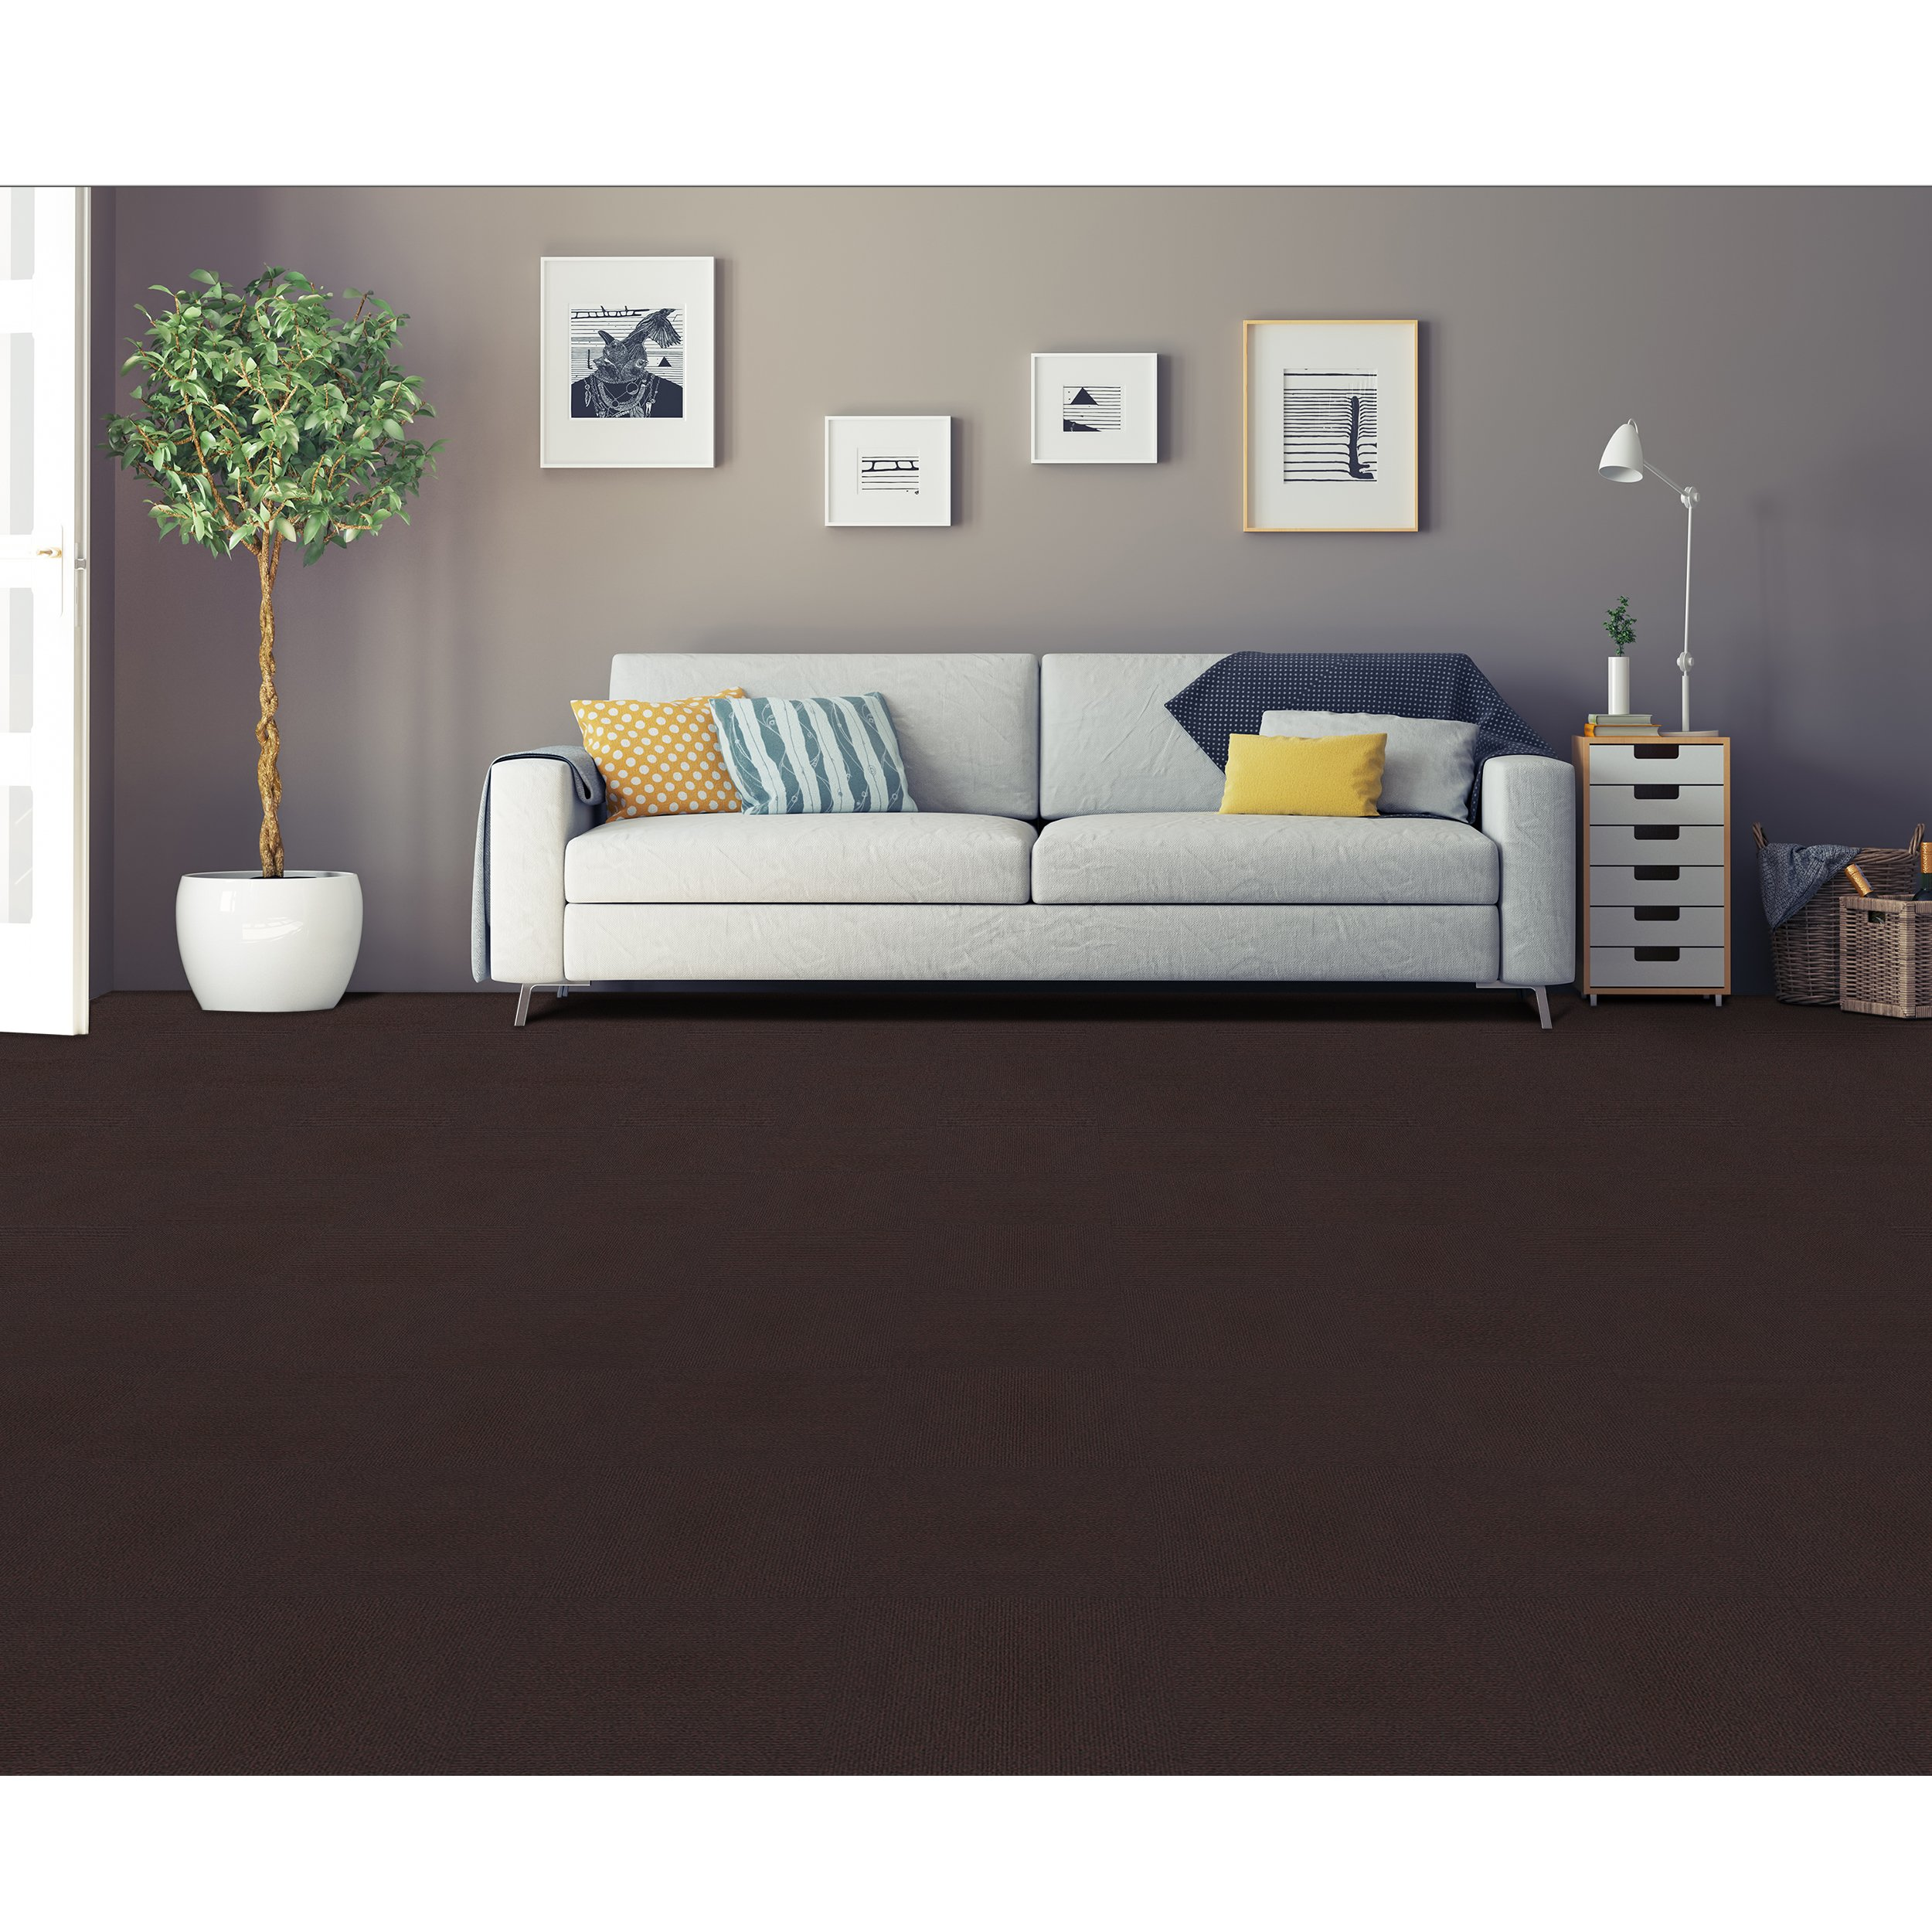 Achim Imports NXCRPTBR12 Home Furnishings Nexus 12x12 Self Adhesive Carpet Floor Tile, 12 Tiles/12 sq. Ft, Brown